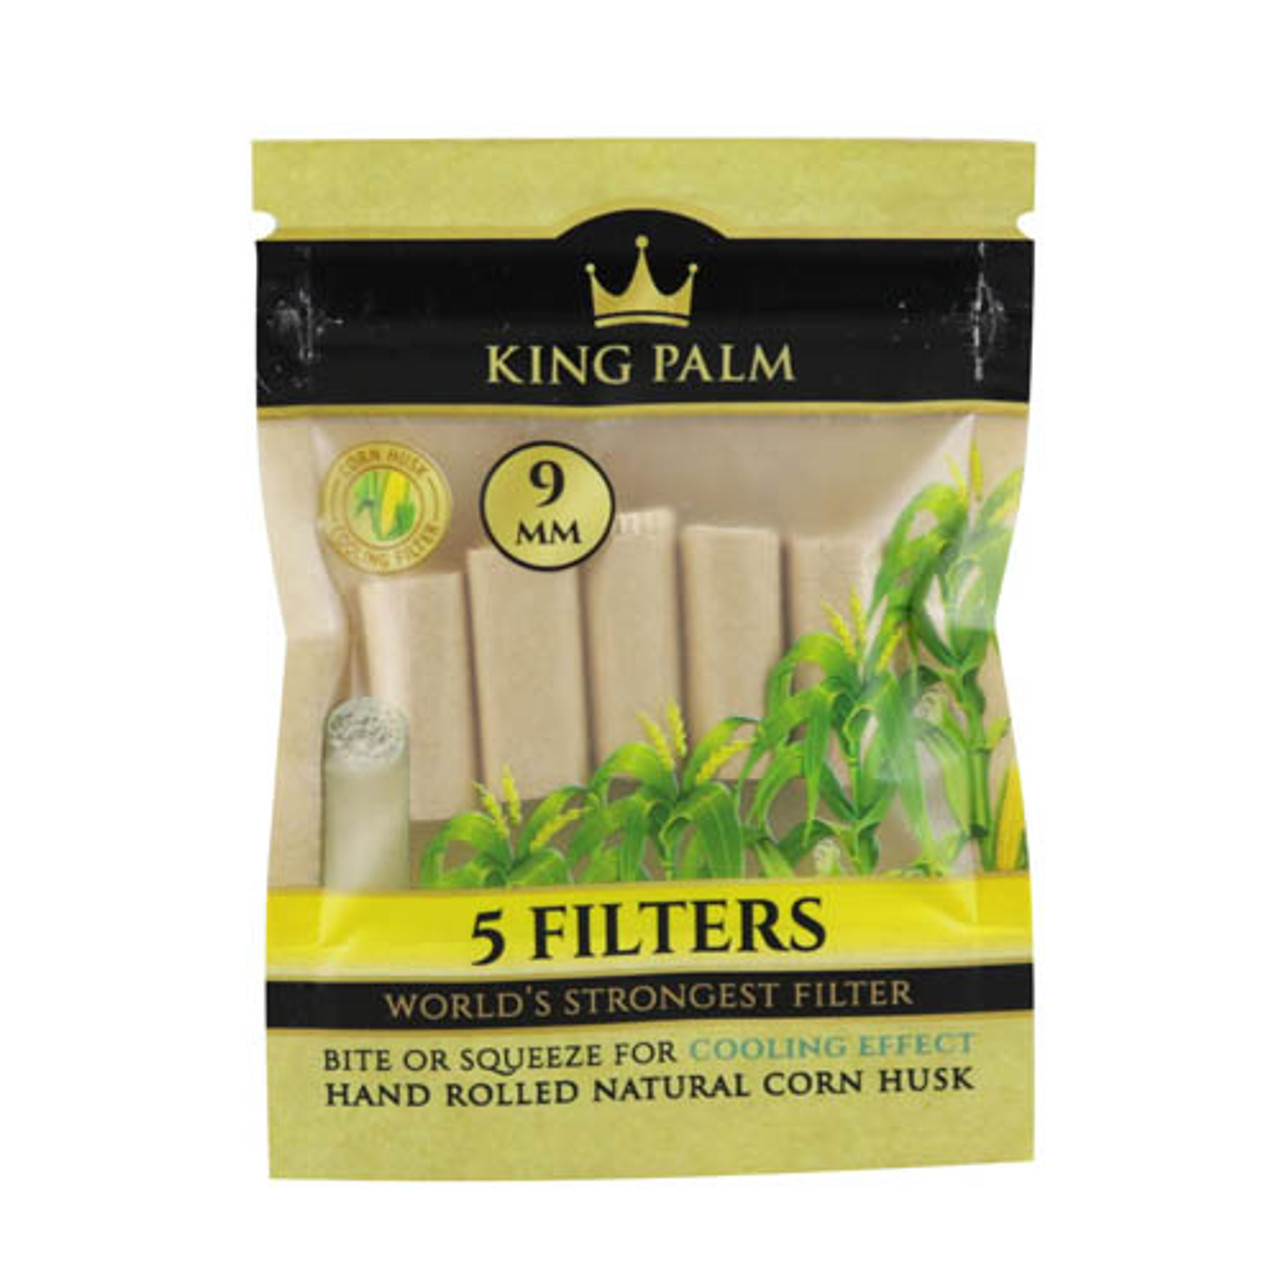 King Palm Corn Husk Filters 5ct (Display of 24)